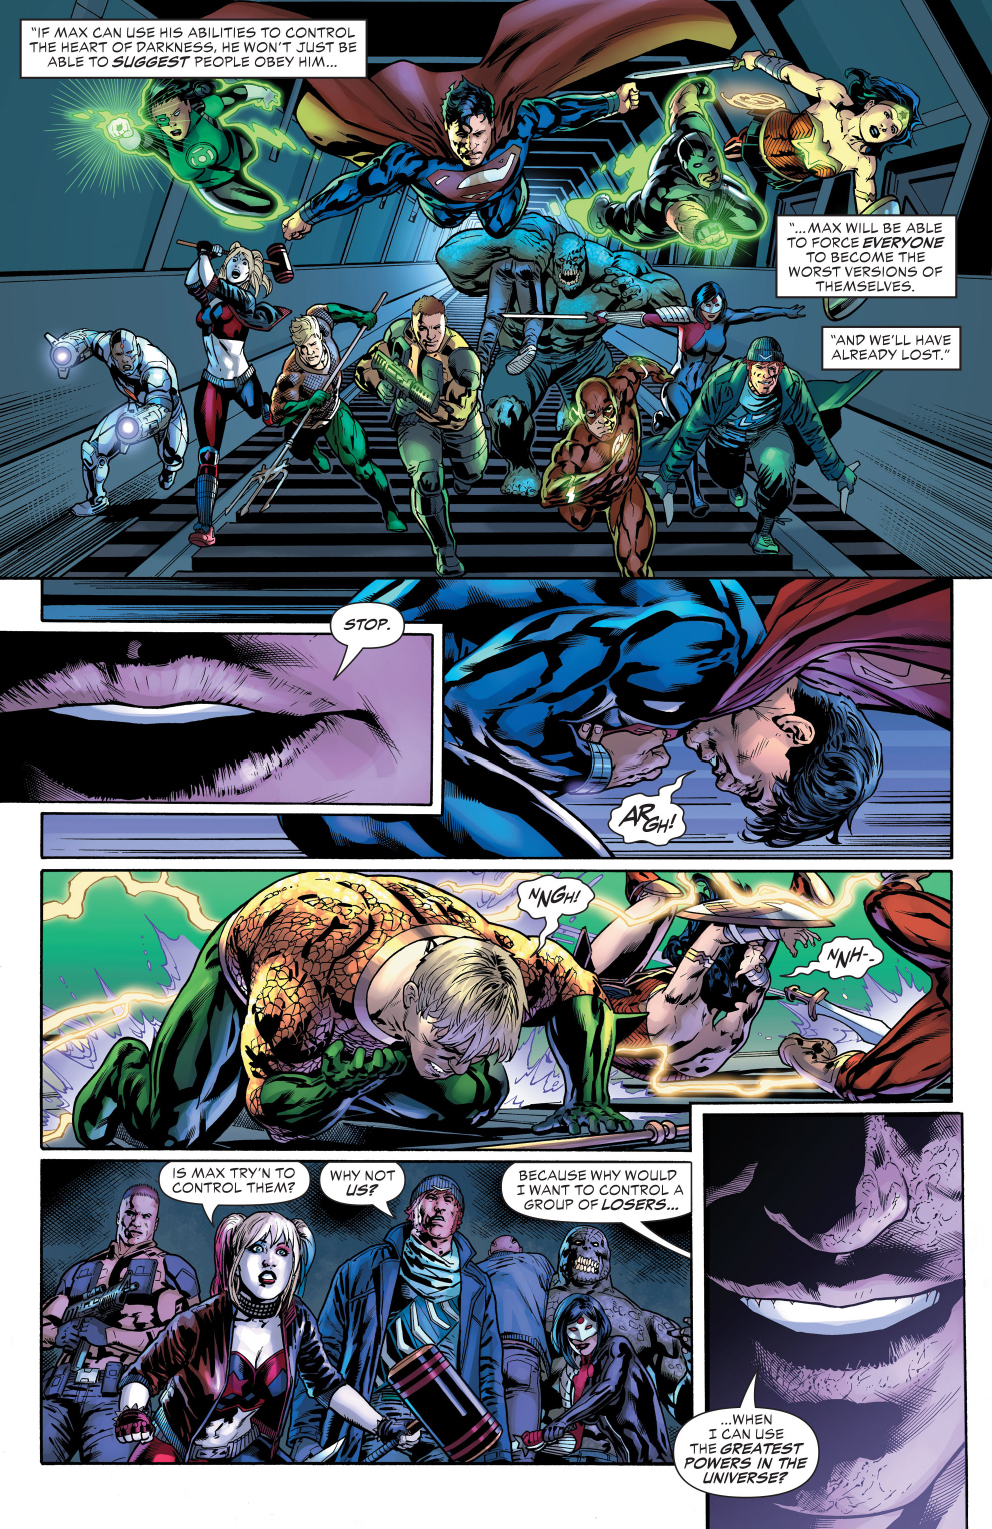 maxwell-lord-mind-controls-the-justice-league-rebirth